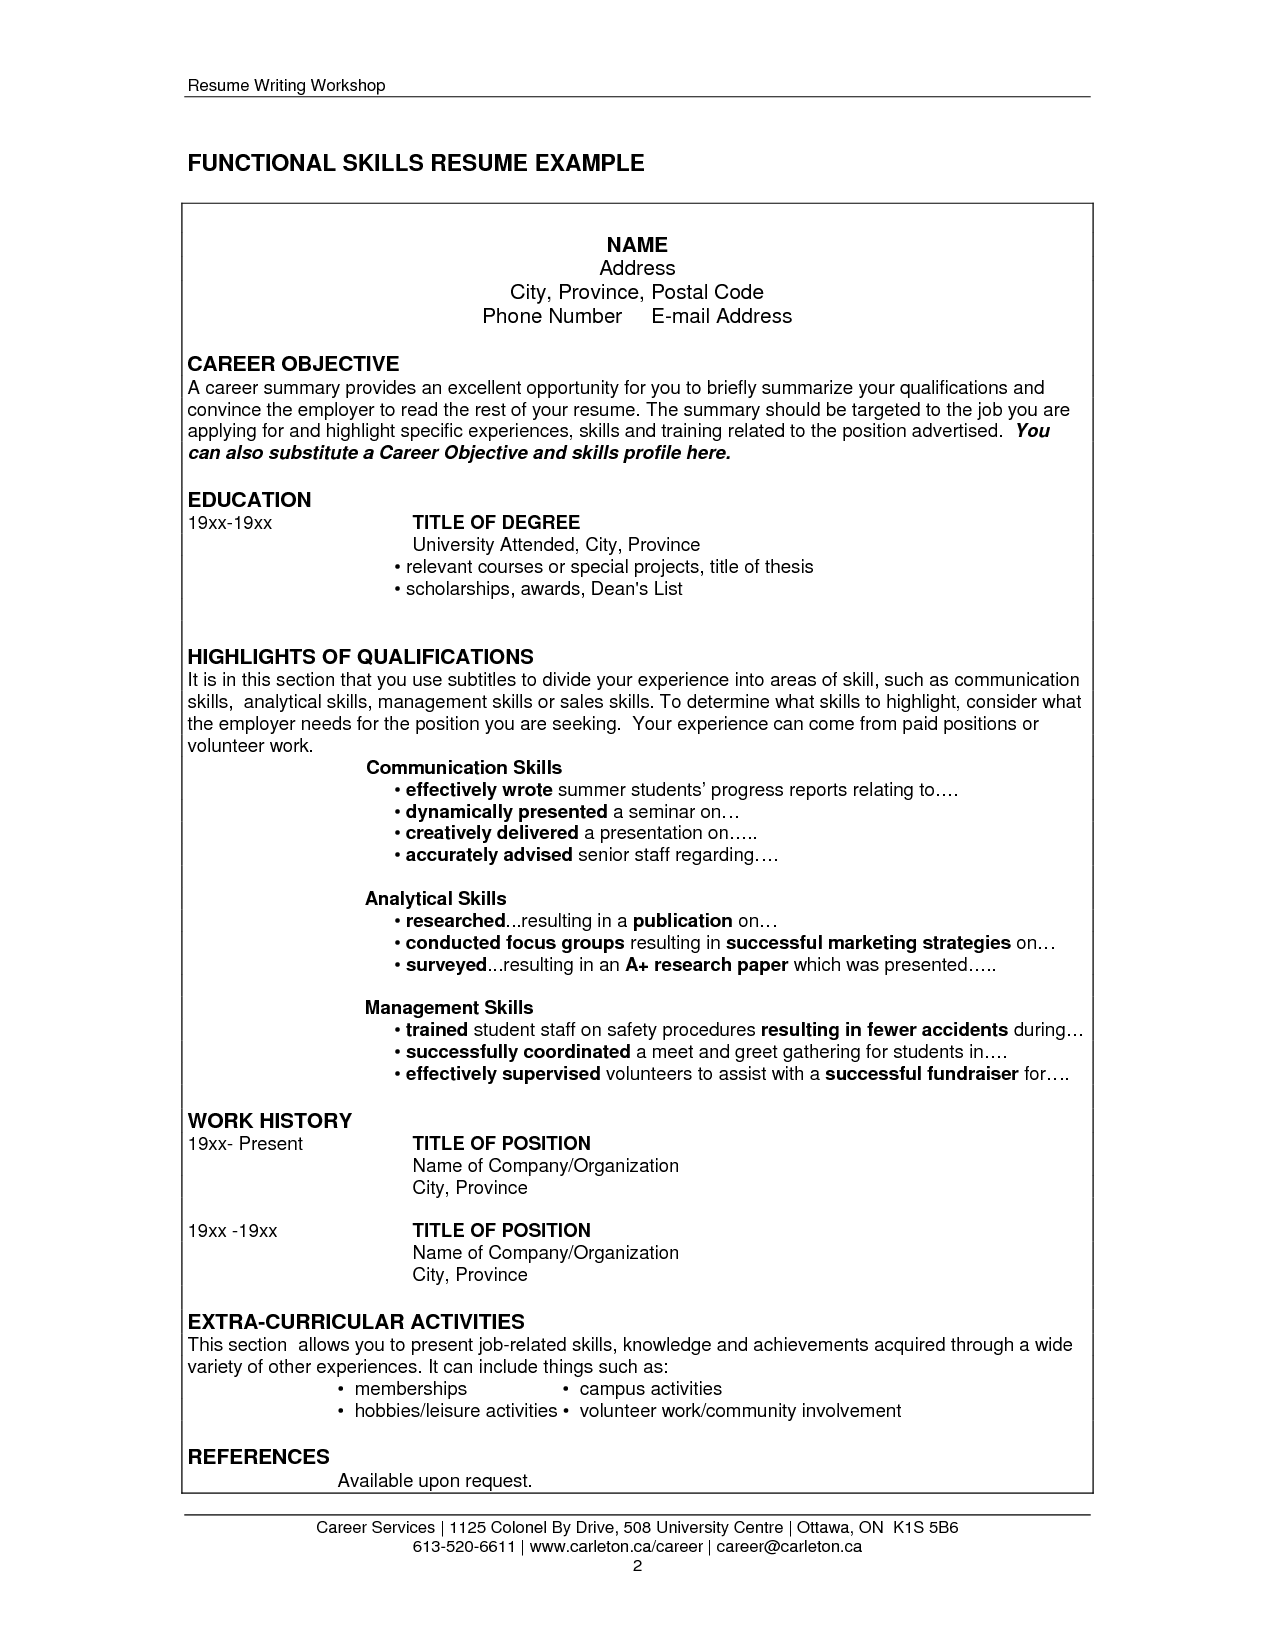 Resume Templates Tamu Fair Image Result For Skills Resume Format  Business  Pinterest